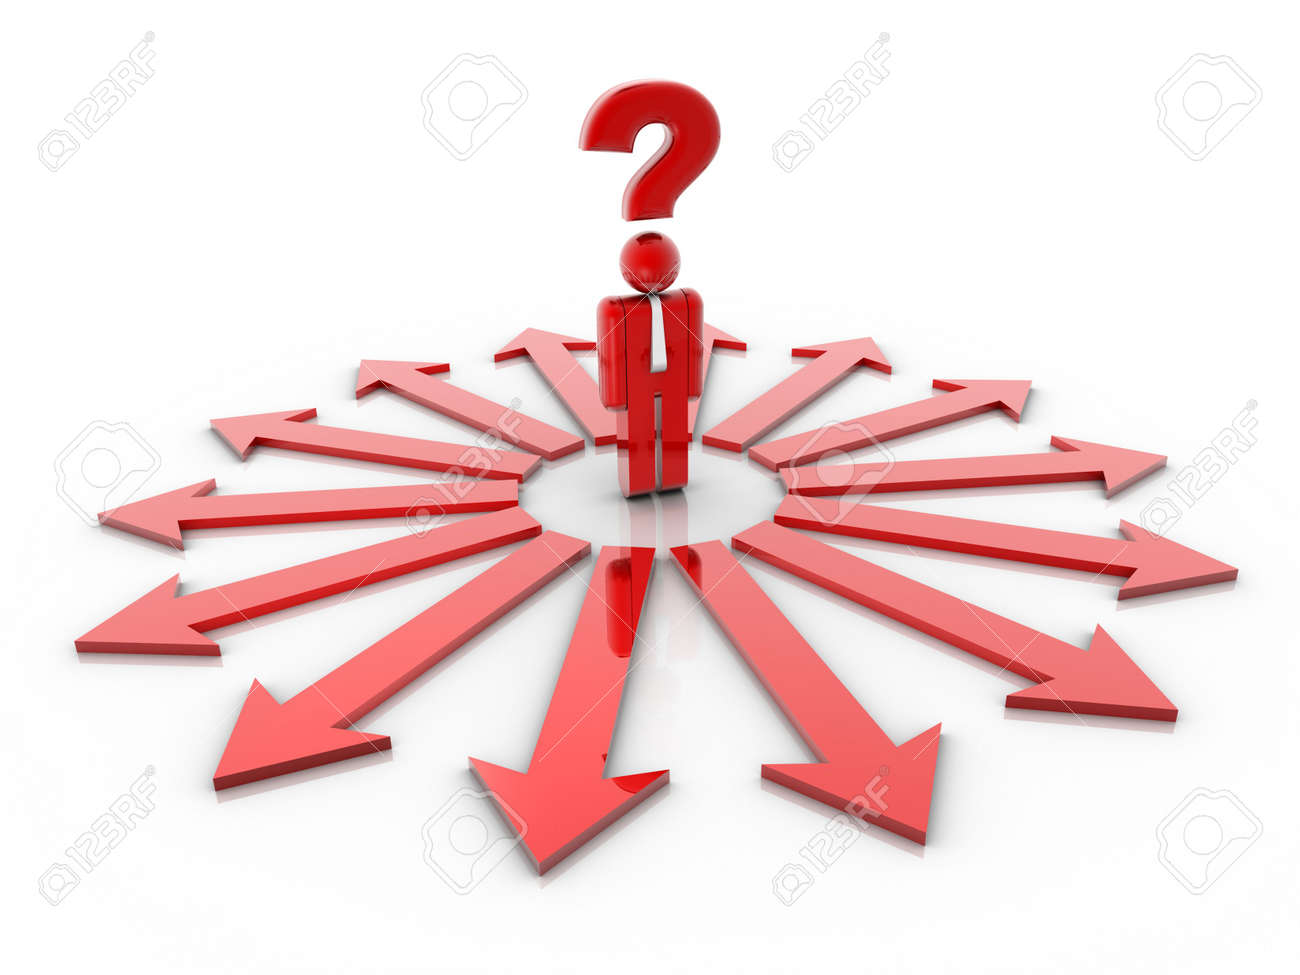 People icon with question mark over his head and surrounded by directional signs - 3d render Stock Photo - 5862606